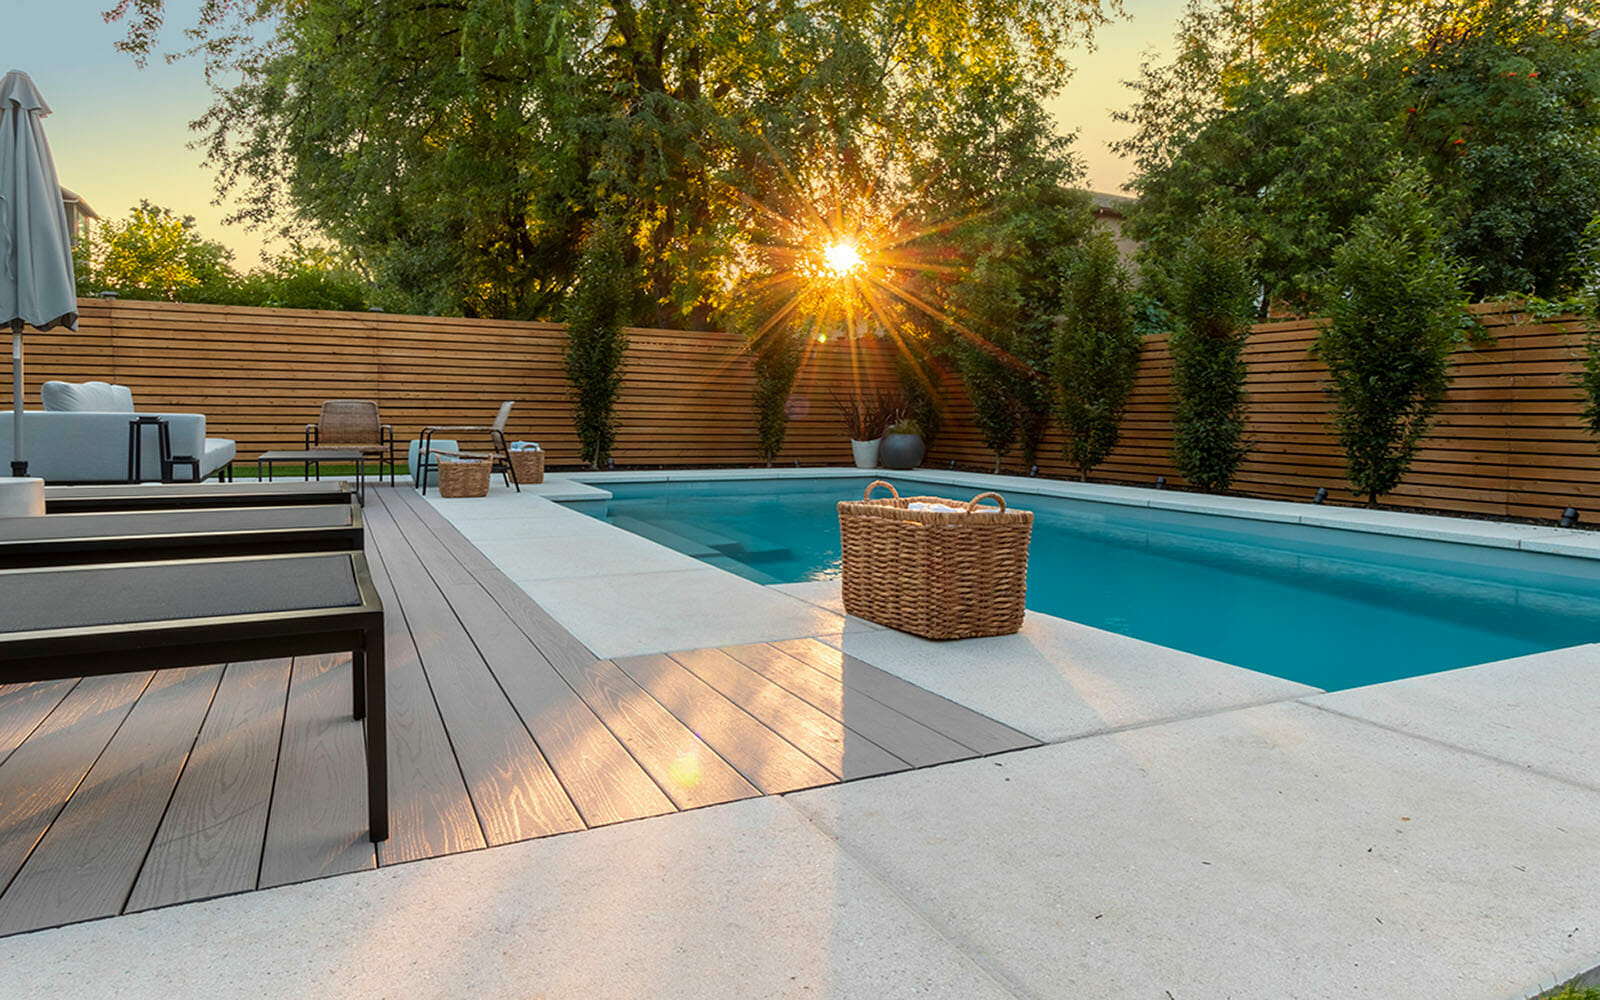 Complete Landscape Design & Fiberglass Pool Installation Project; Featuring, Pool Deck Interlocking, PVC Decking, and Patio Design by M.E. Contracting.